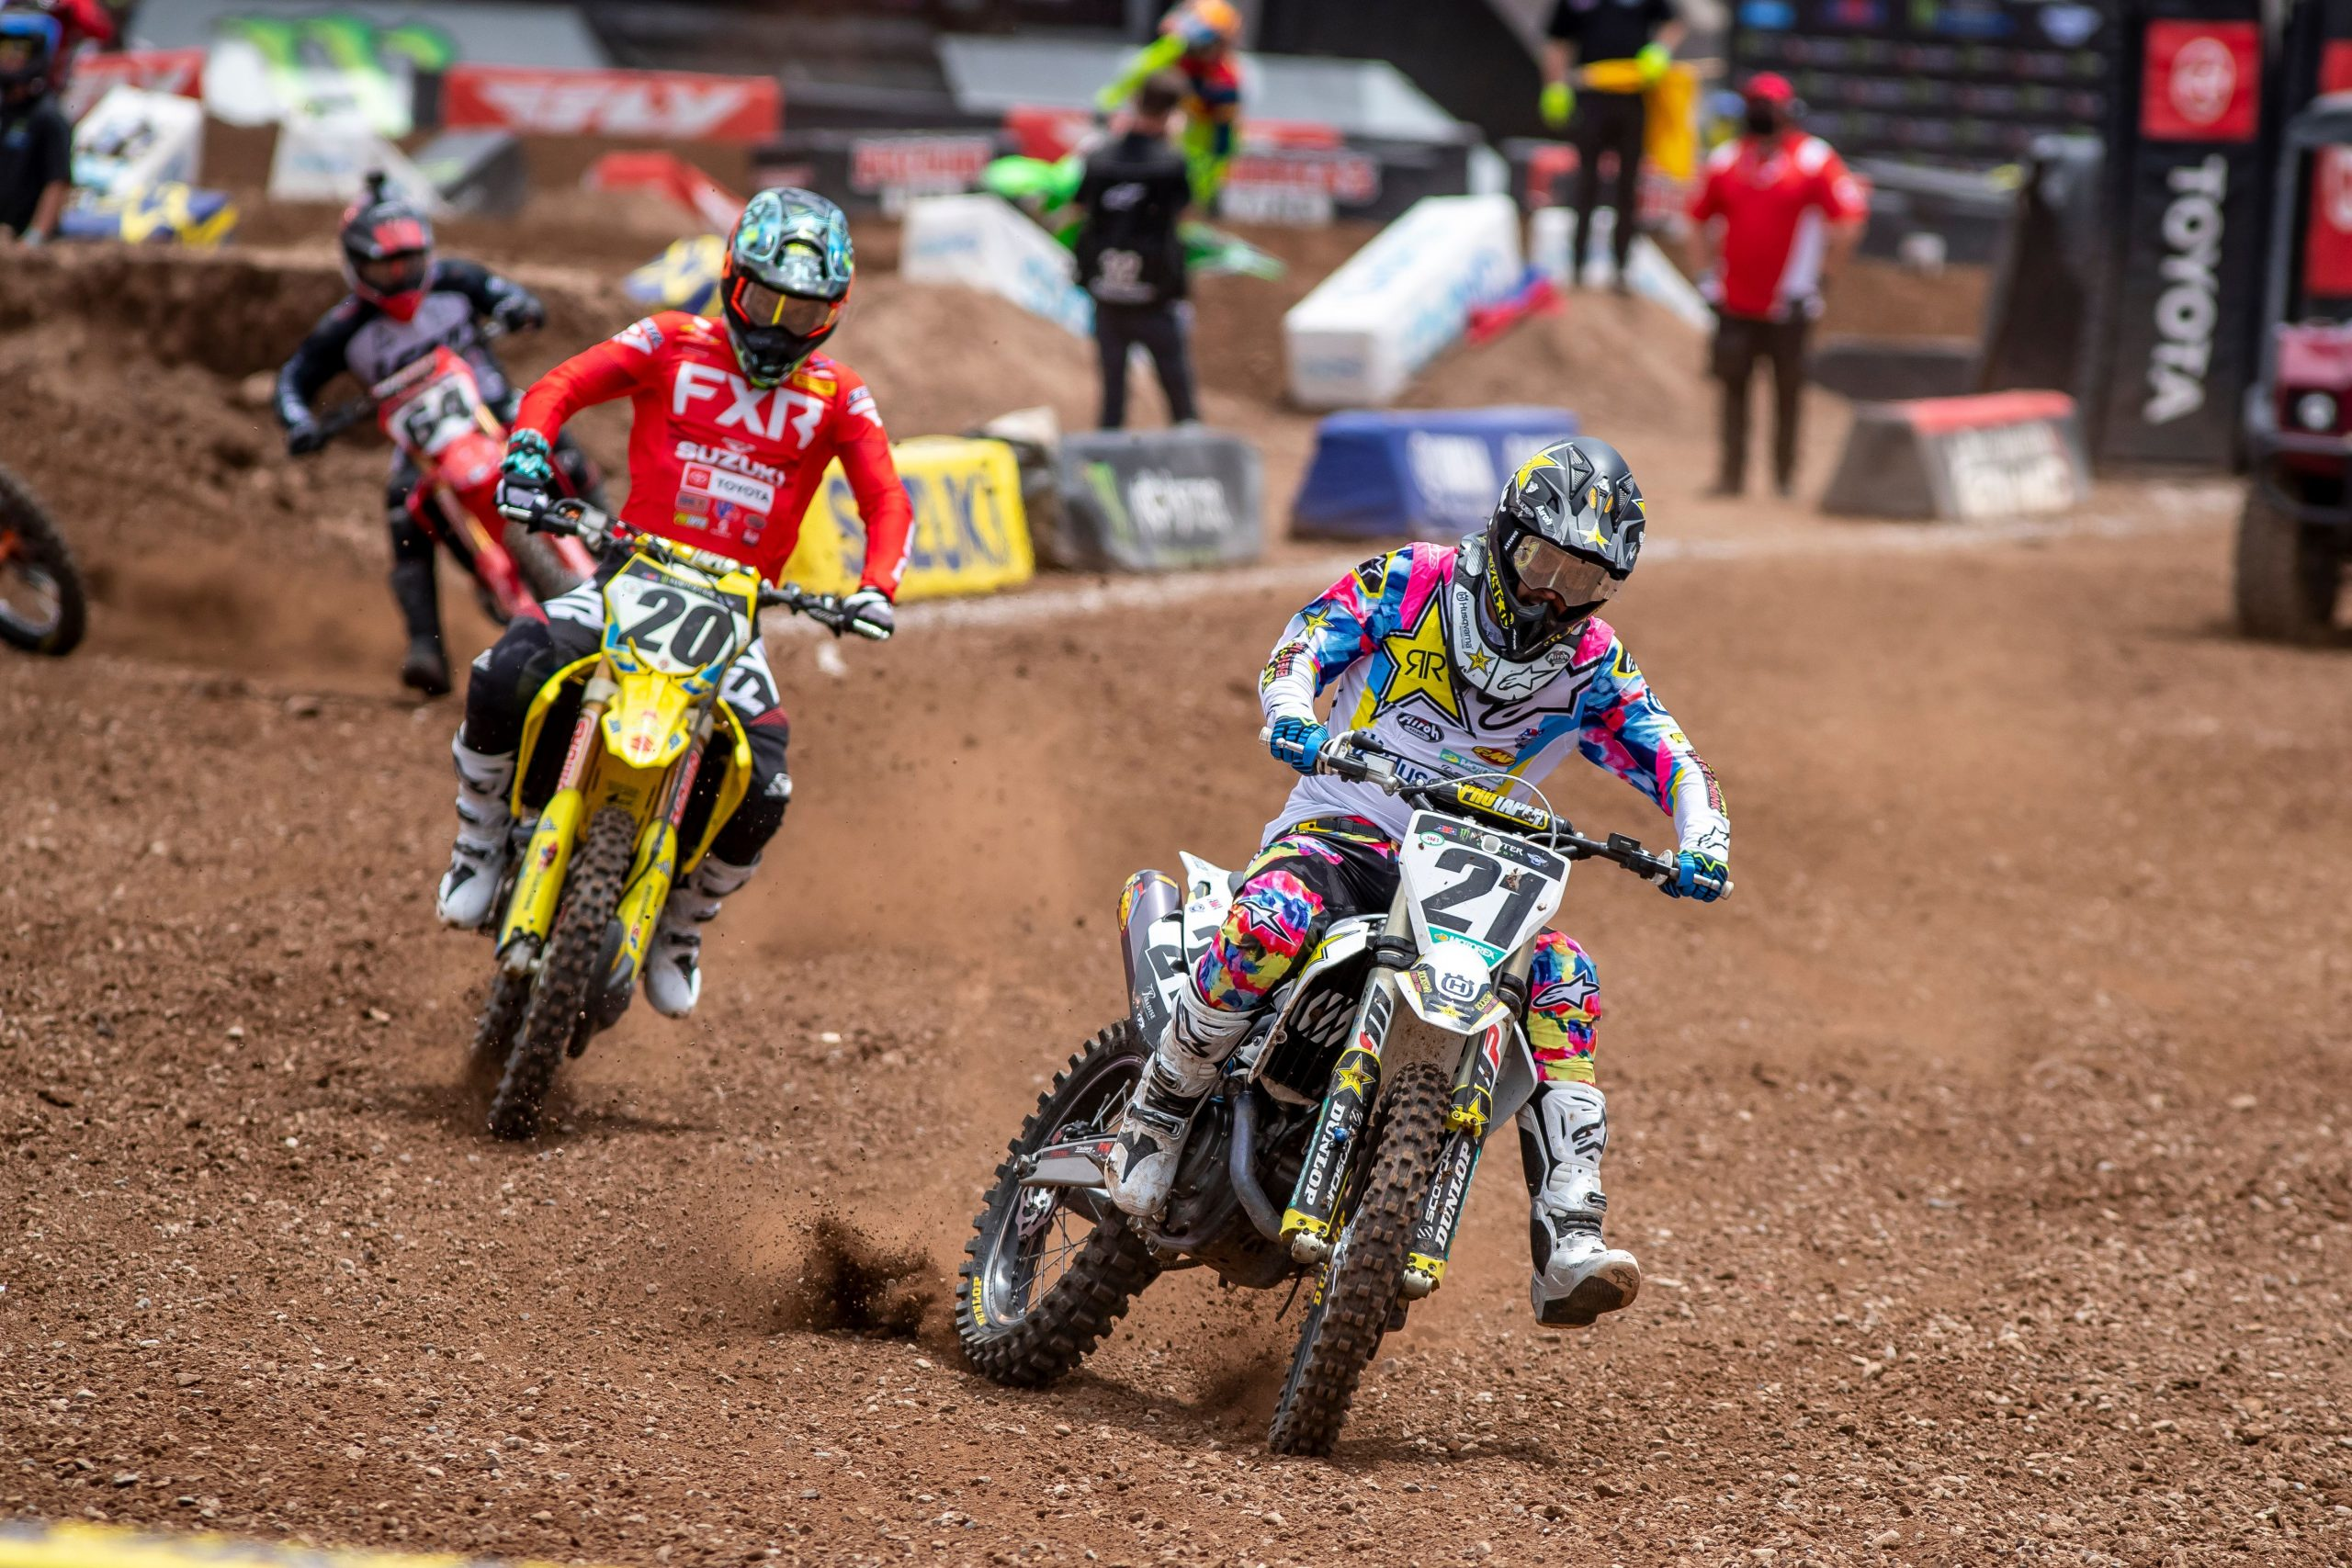 Supercross riders skidding on track action